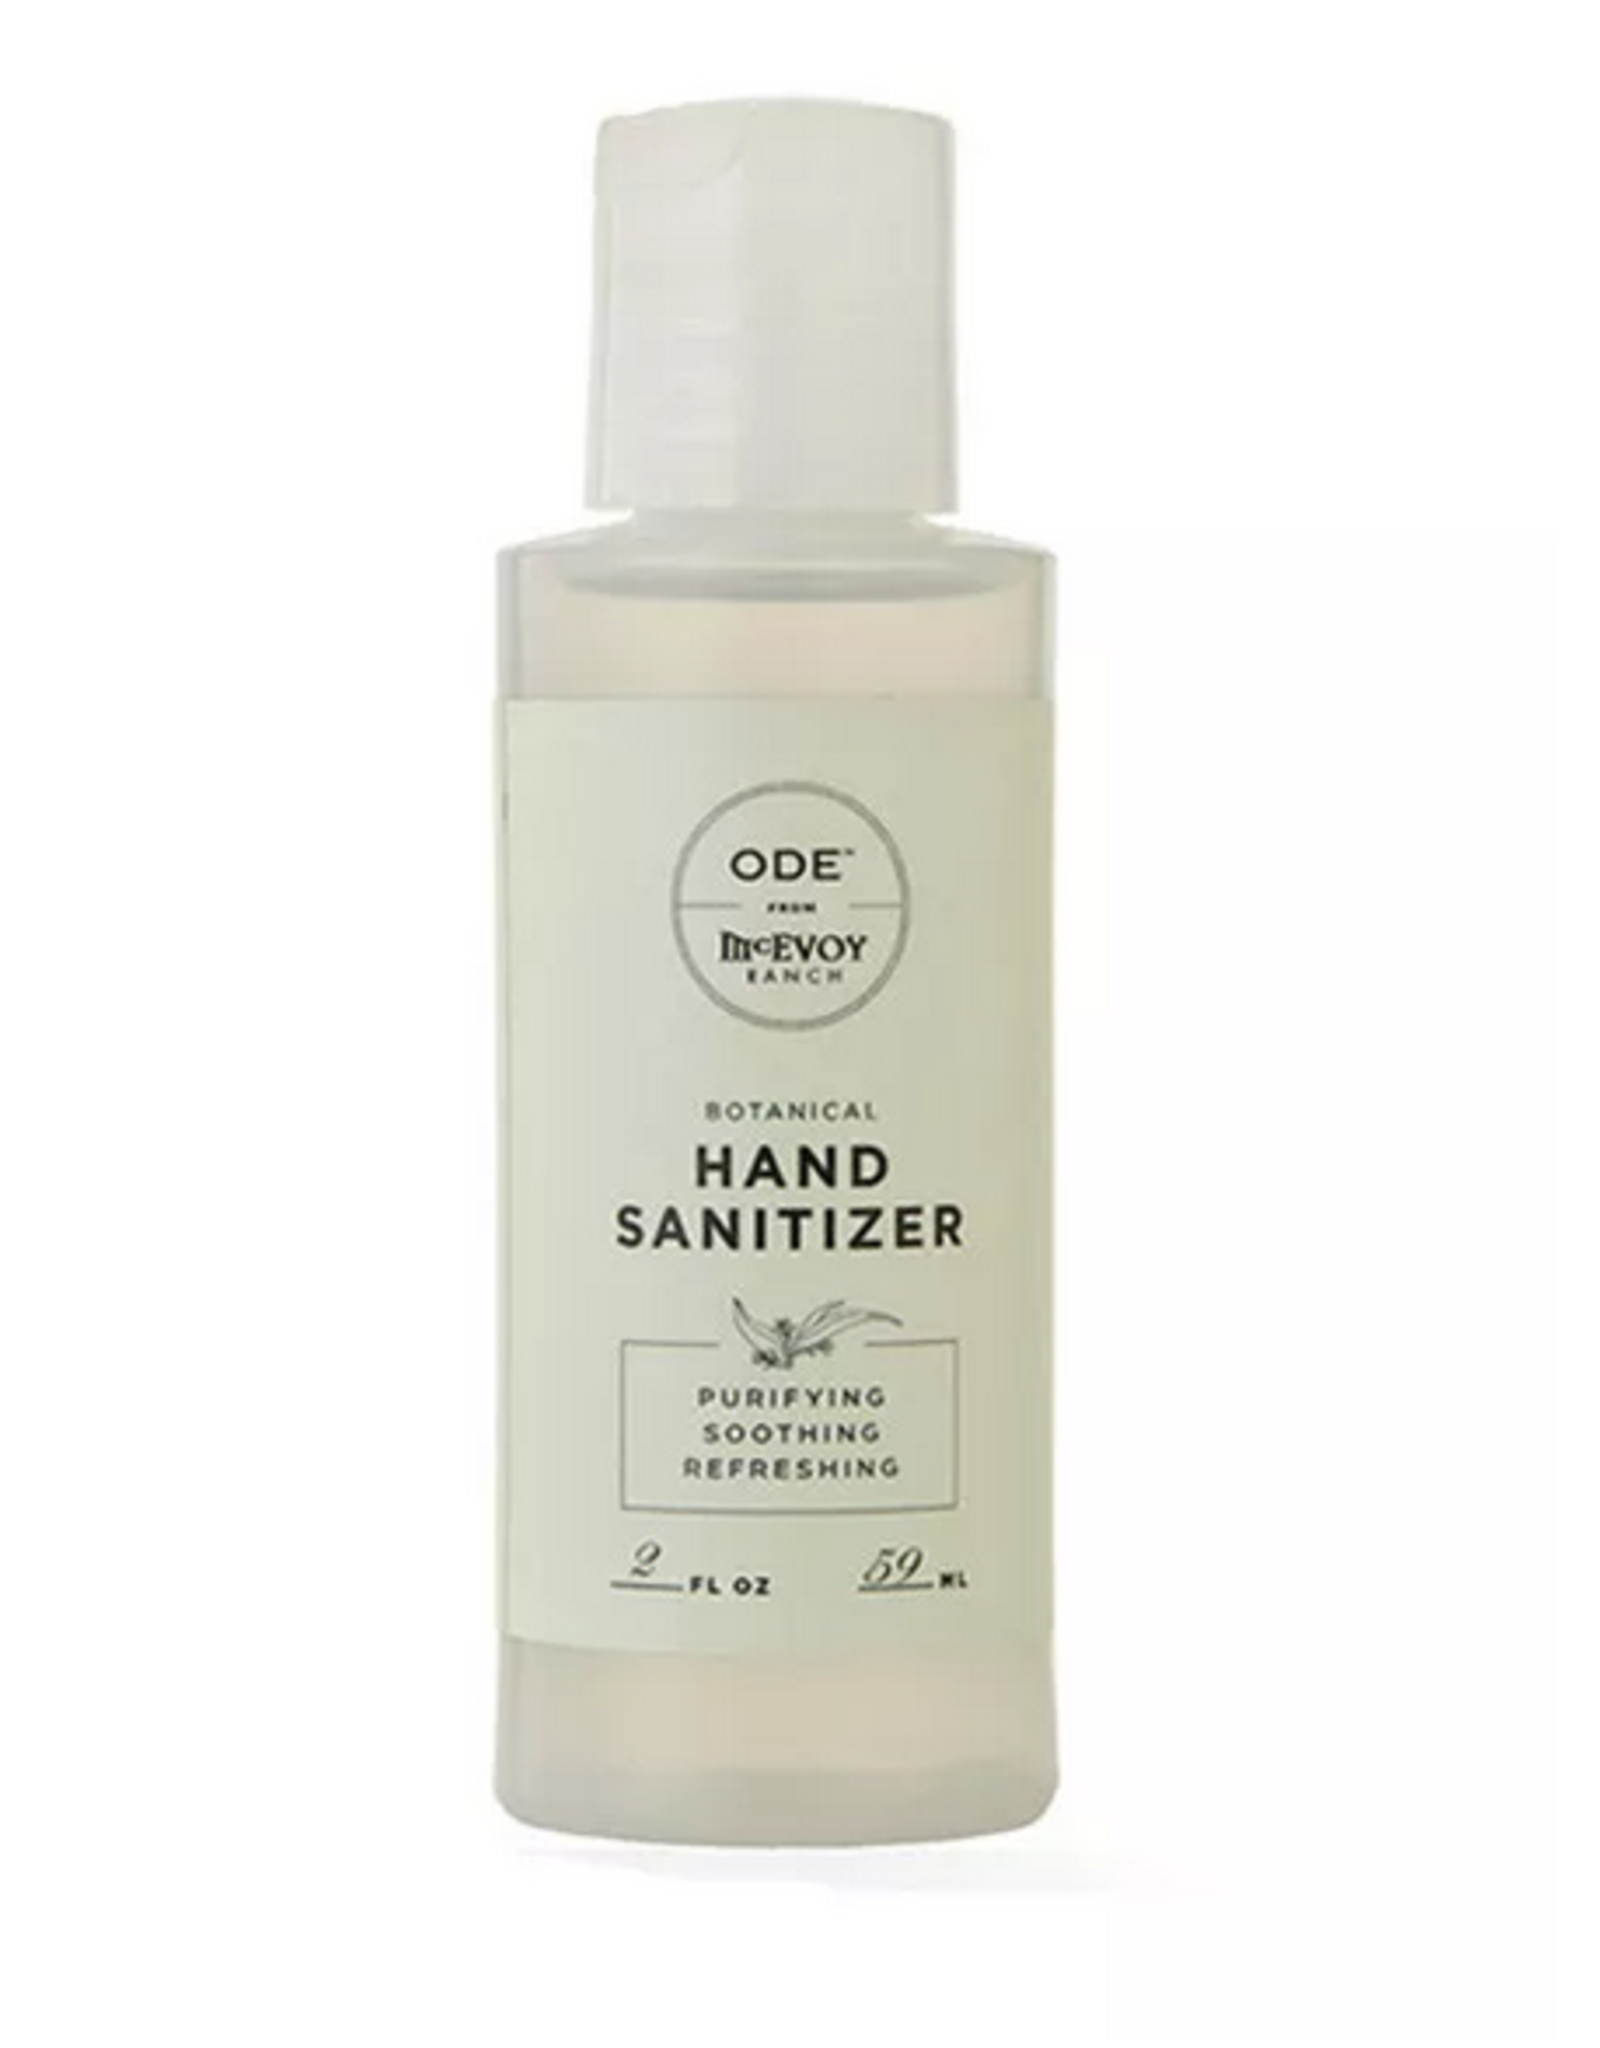 McEvoy Ranch ODE Botanical Hand Sanitizer - 2oz.